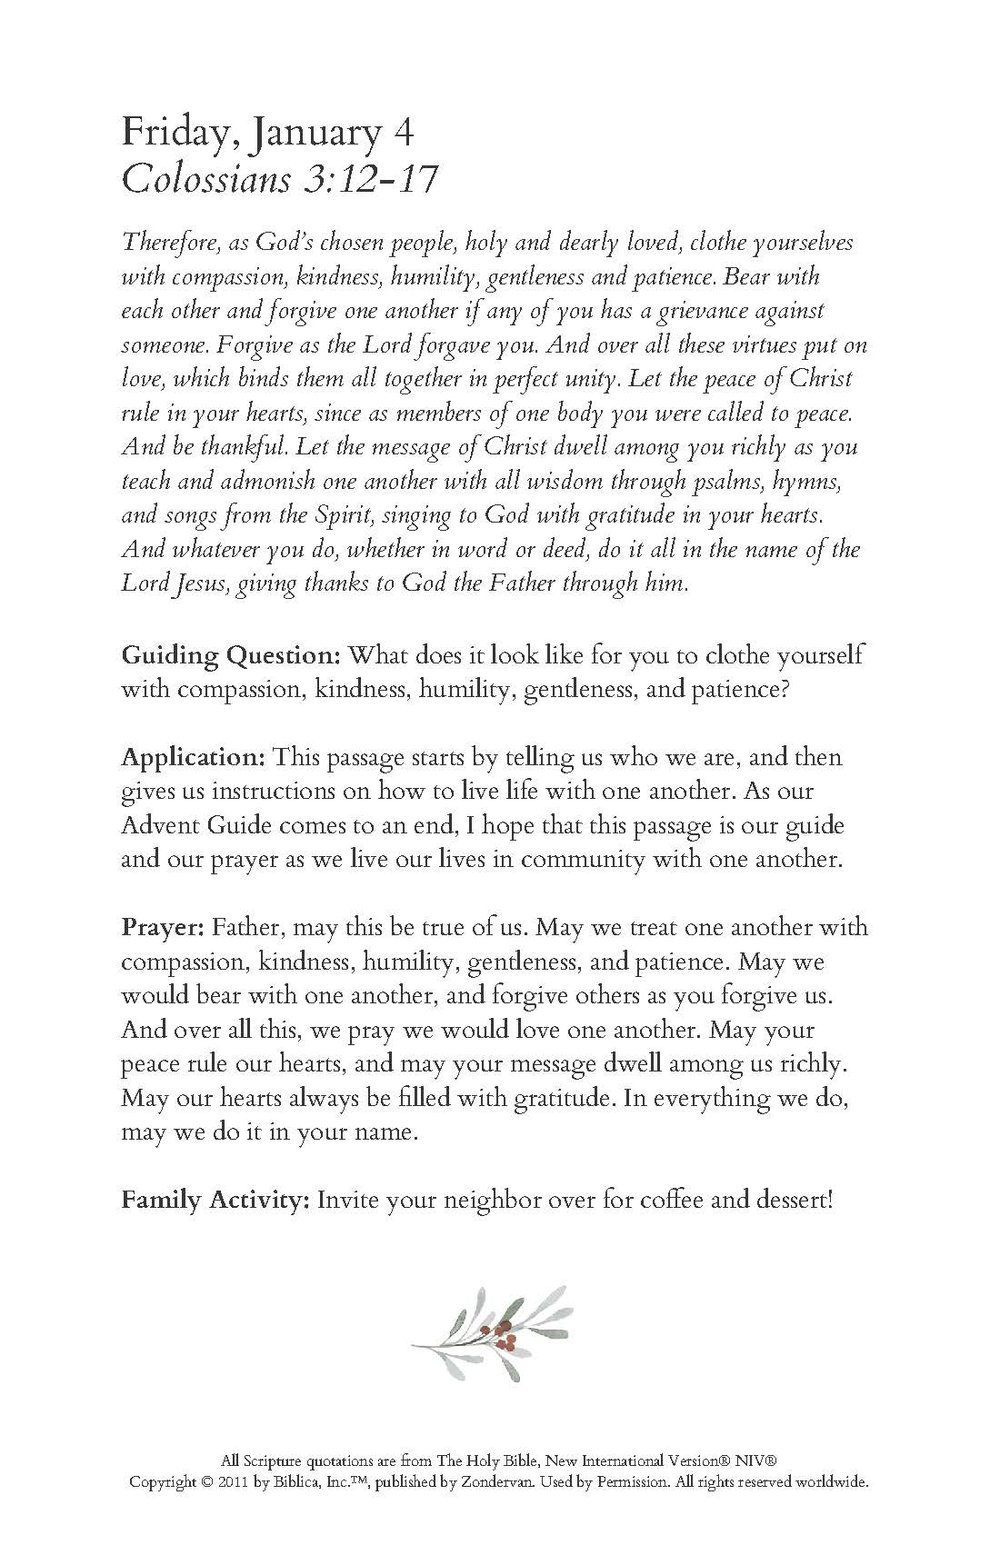 Final Advent Guide - for digital publication_Page_43.jpg